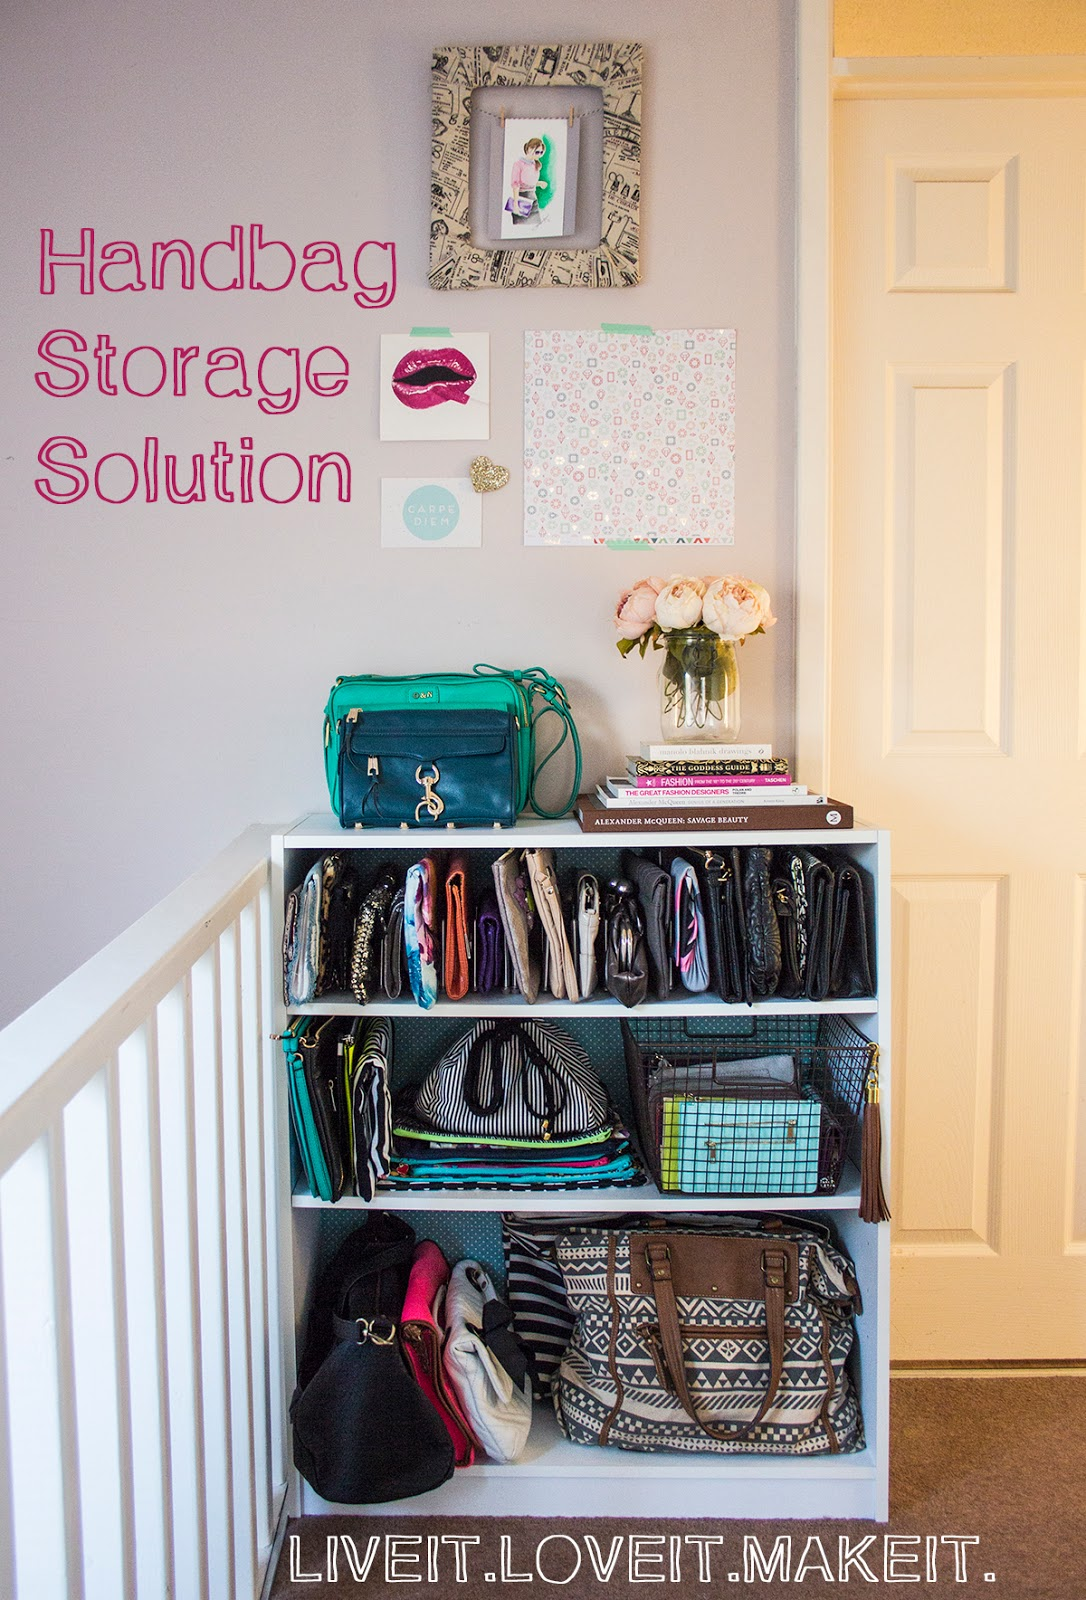 Make It Handbag Storage Solution